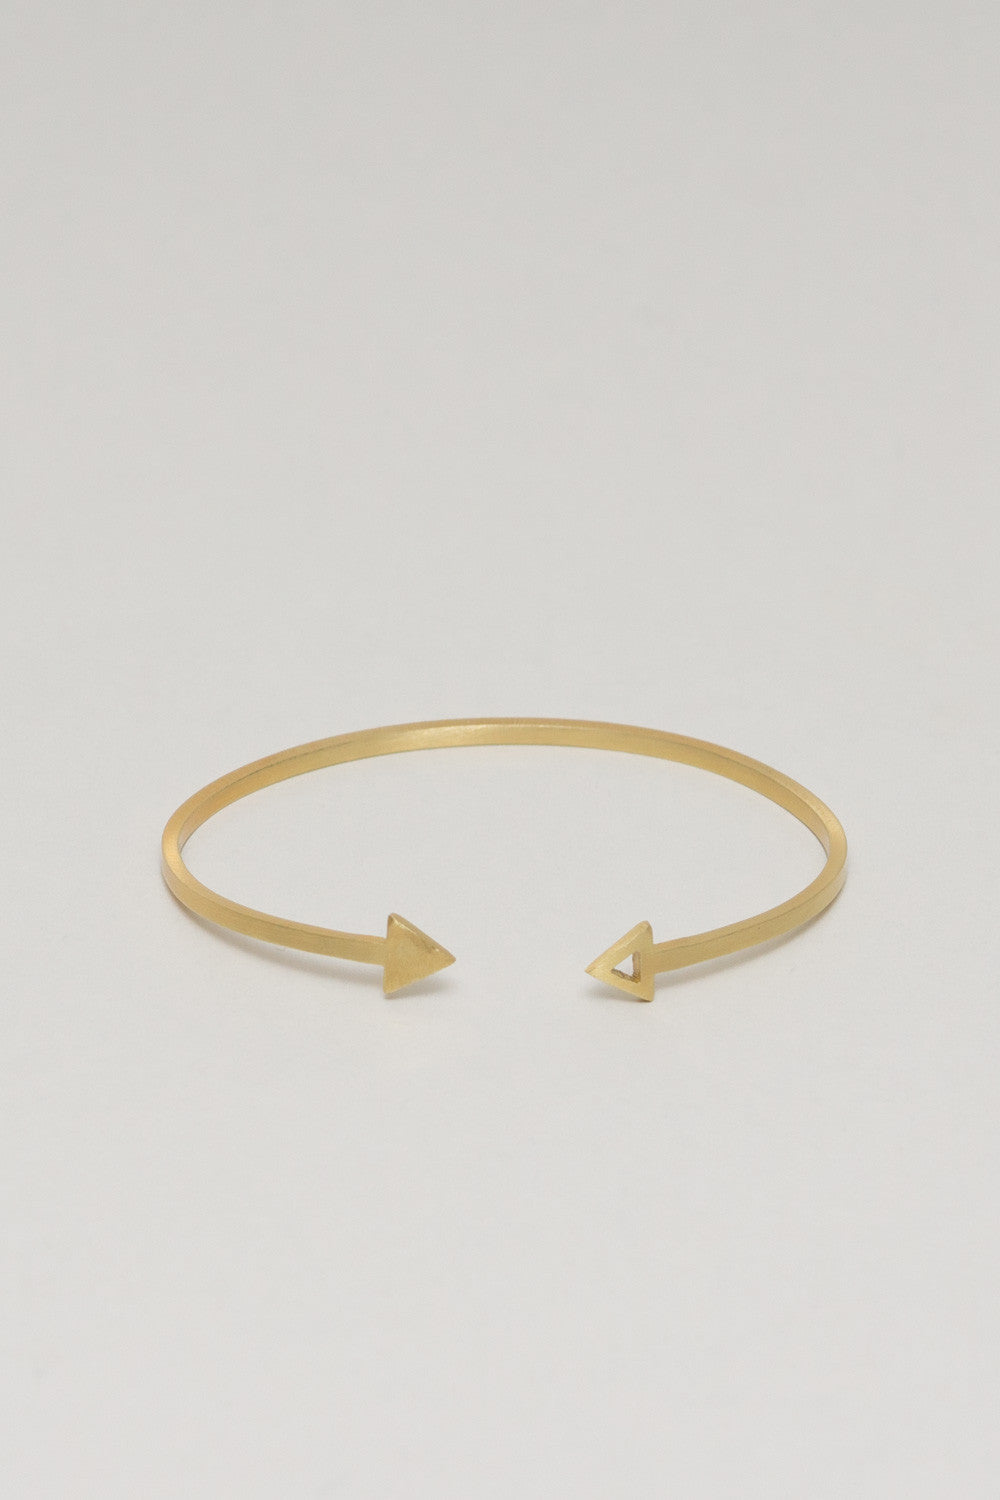 MARIA KARKANTZOU - ARROWS CUFF BRACELET - Jewellery - Ozon Boutique - 6